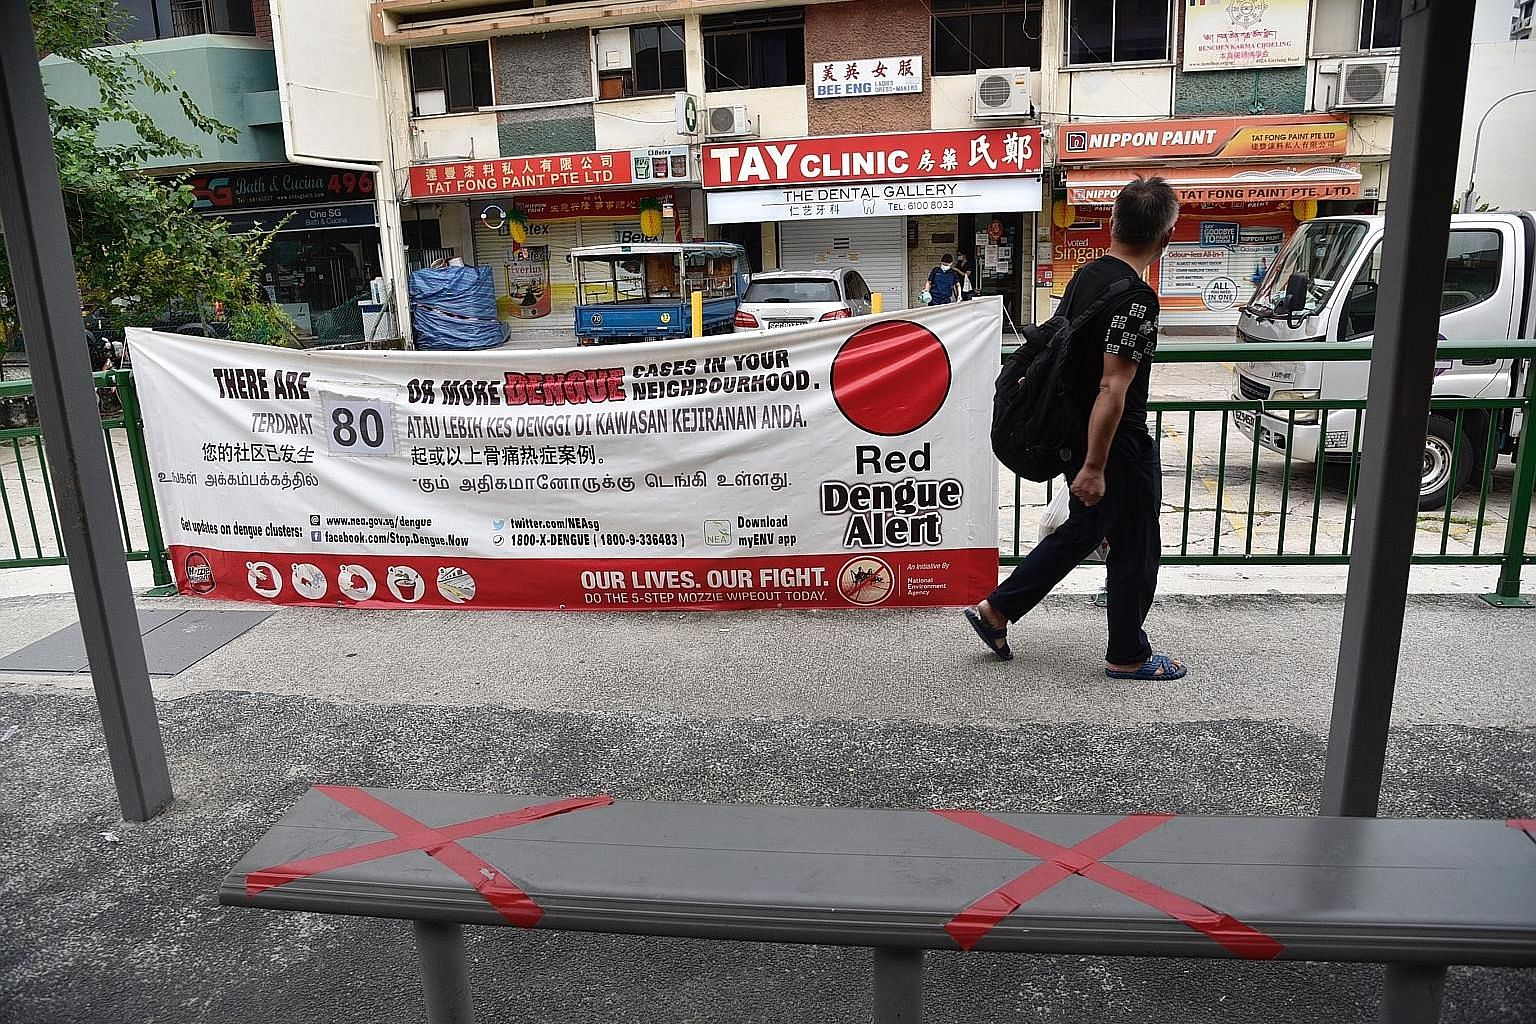 A banner in Geylang Road highlighting the number of dengue cases in the neighbourhood last month. Five times the number of mosquito larvae breeding spots were found in homes and common corridors during the circuit breaker months of April and May, com